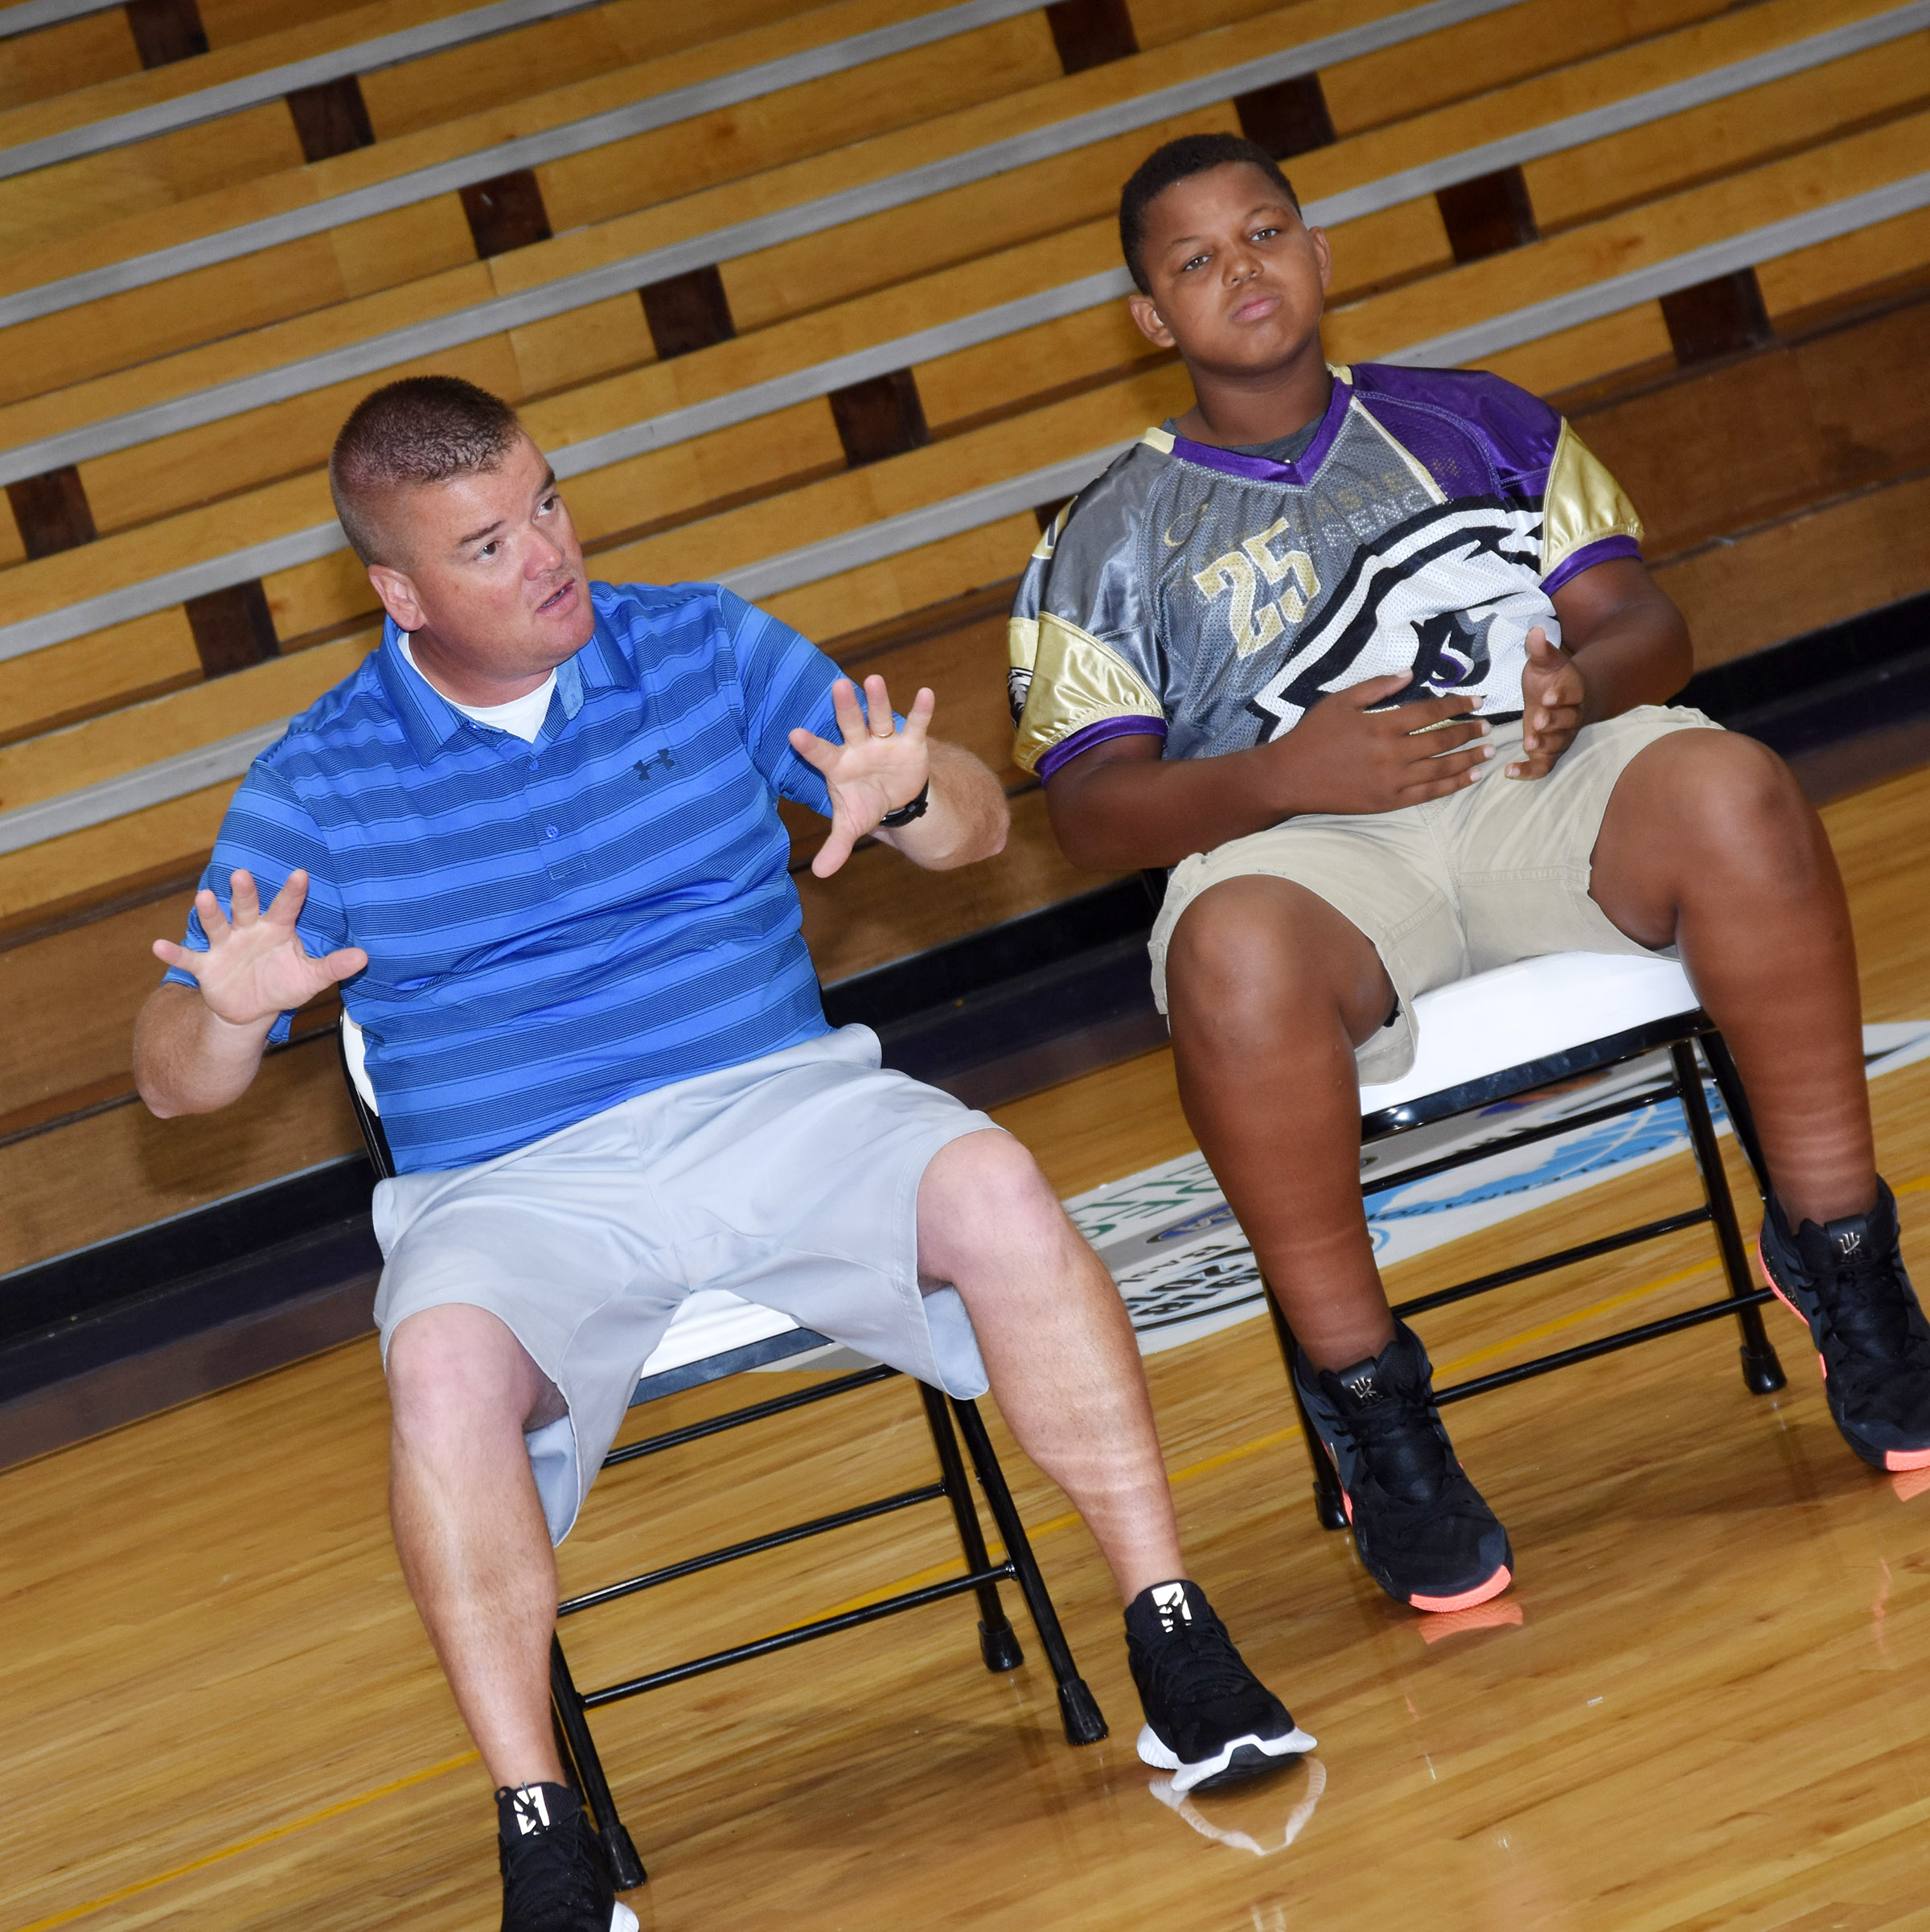 CMS physical education teacher Dale Estes talks to his students about the expectations for his class. At right is eighth-grader Keondre Weathers.